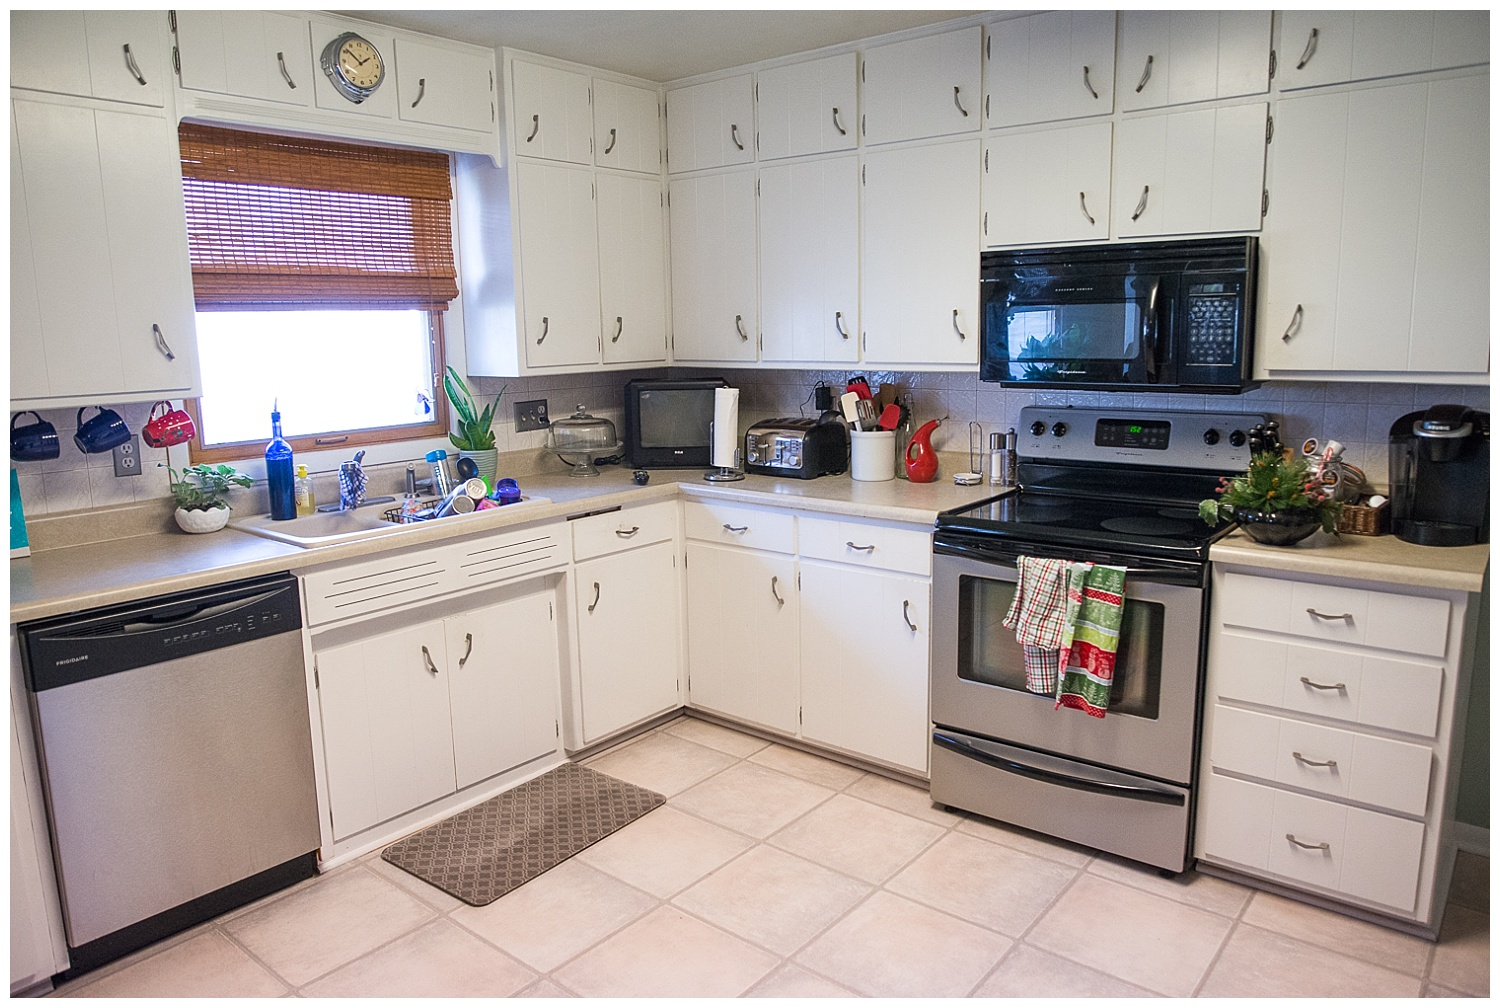 This gleaming kitchen is thanks to spotless white painted kitchen cupboards. And they are thanks to a team of family members pitching in to get them painted in the week before the Stortzums moved in.